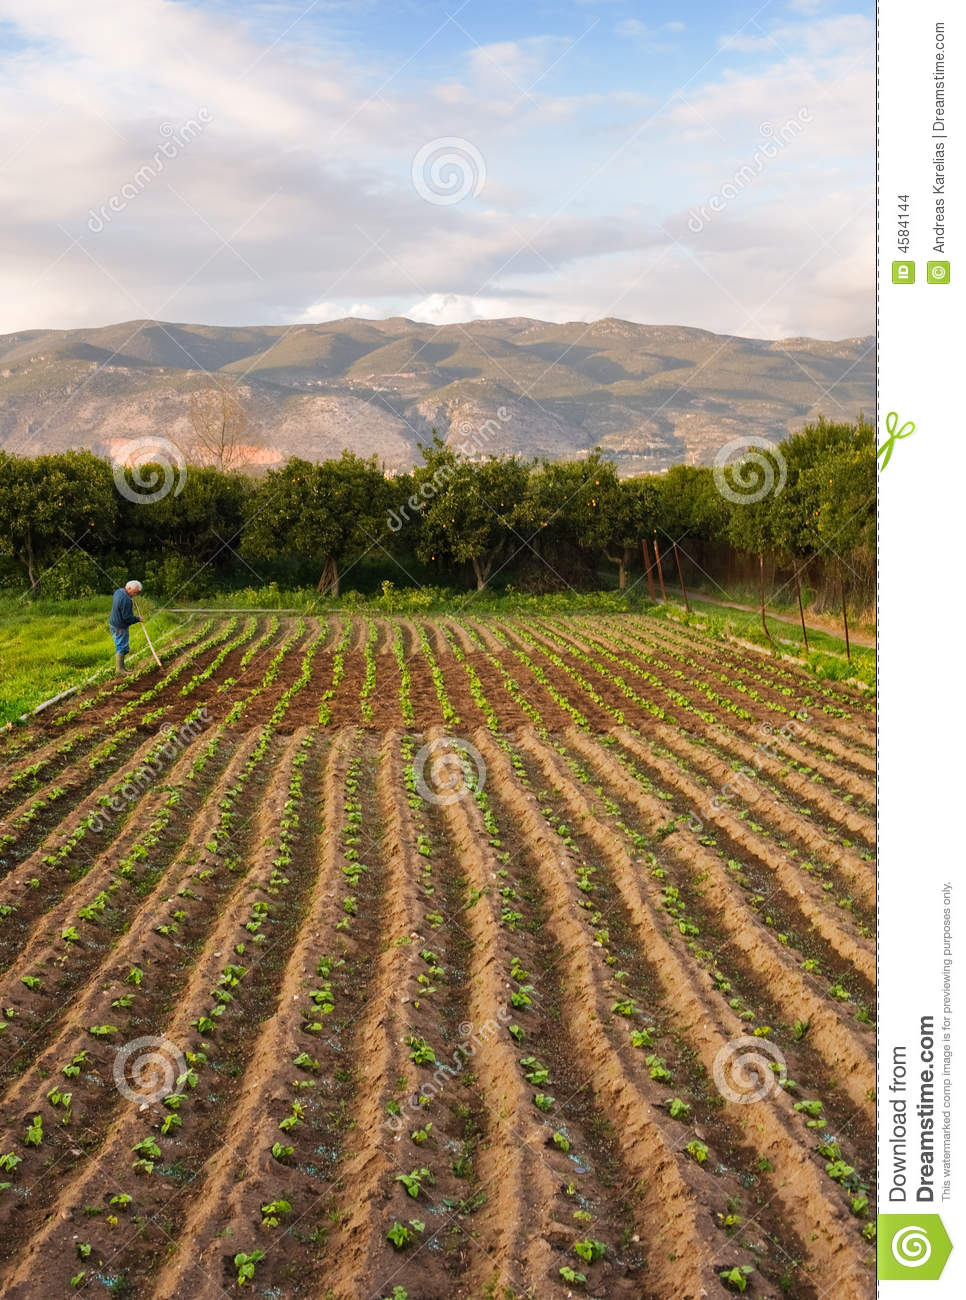 Small farm stock images image 4584144 - Small space farming image ...